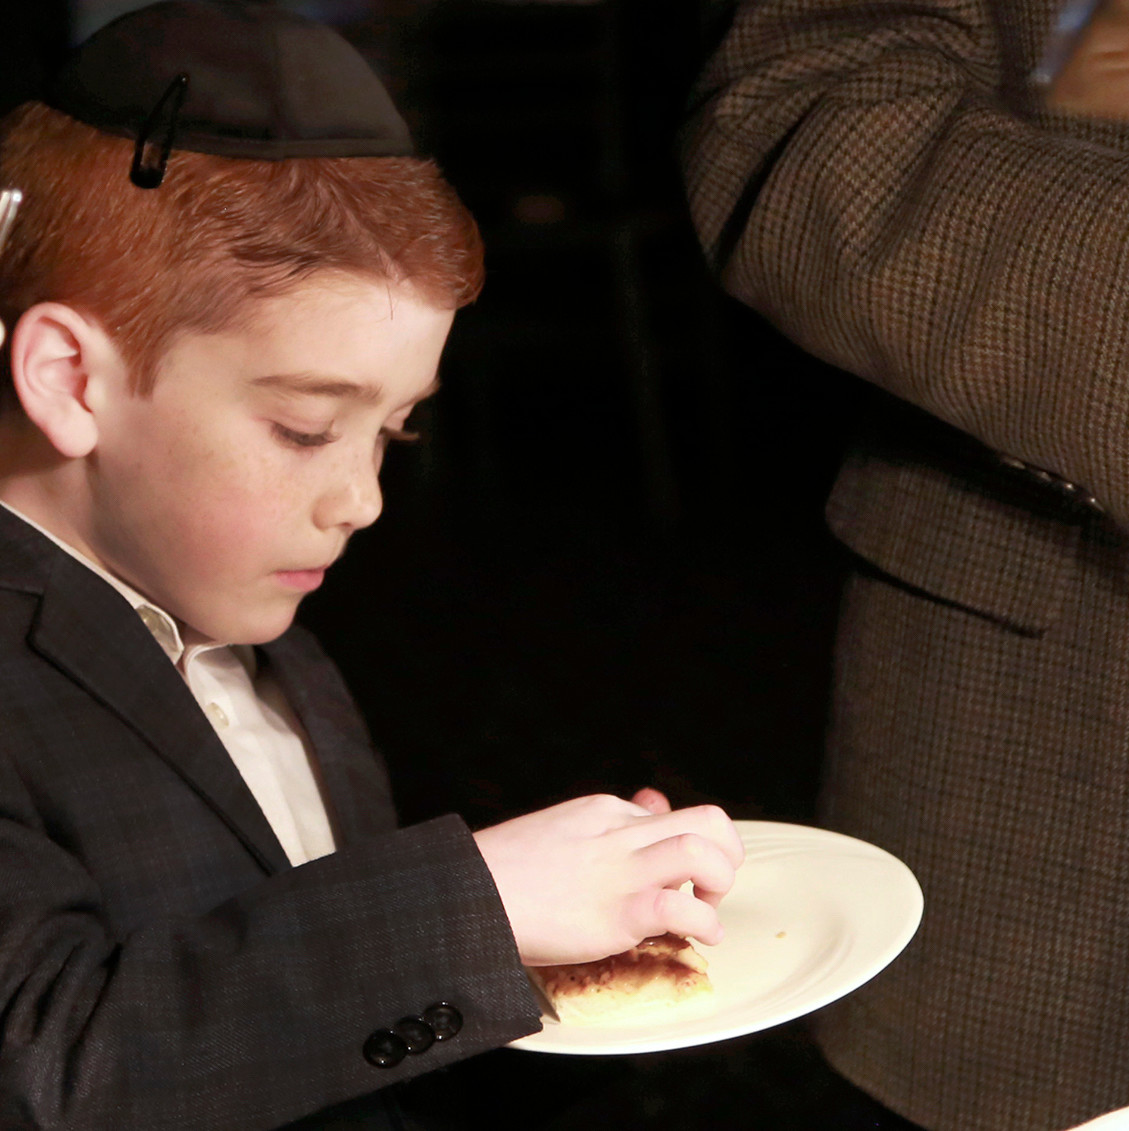 Seven-year old Levi Horshander, son of an awardee, samples focaccia bread.